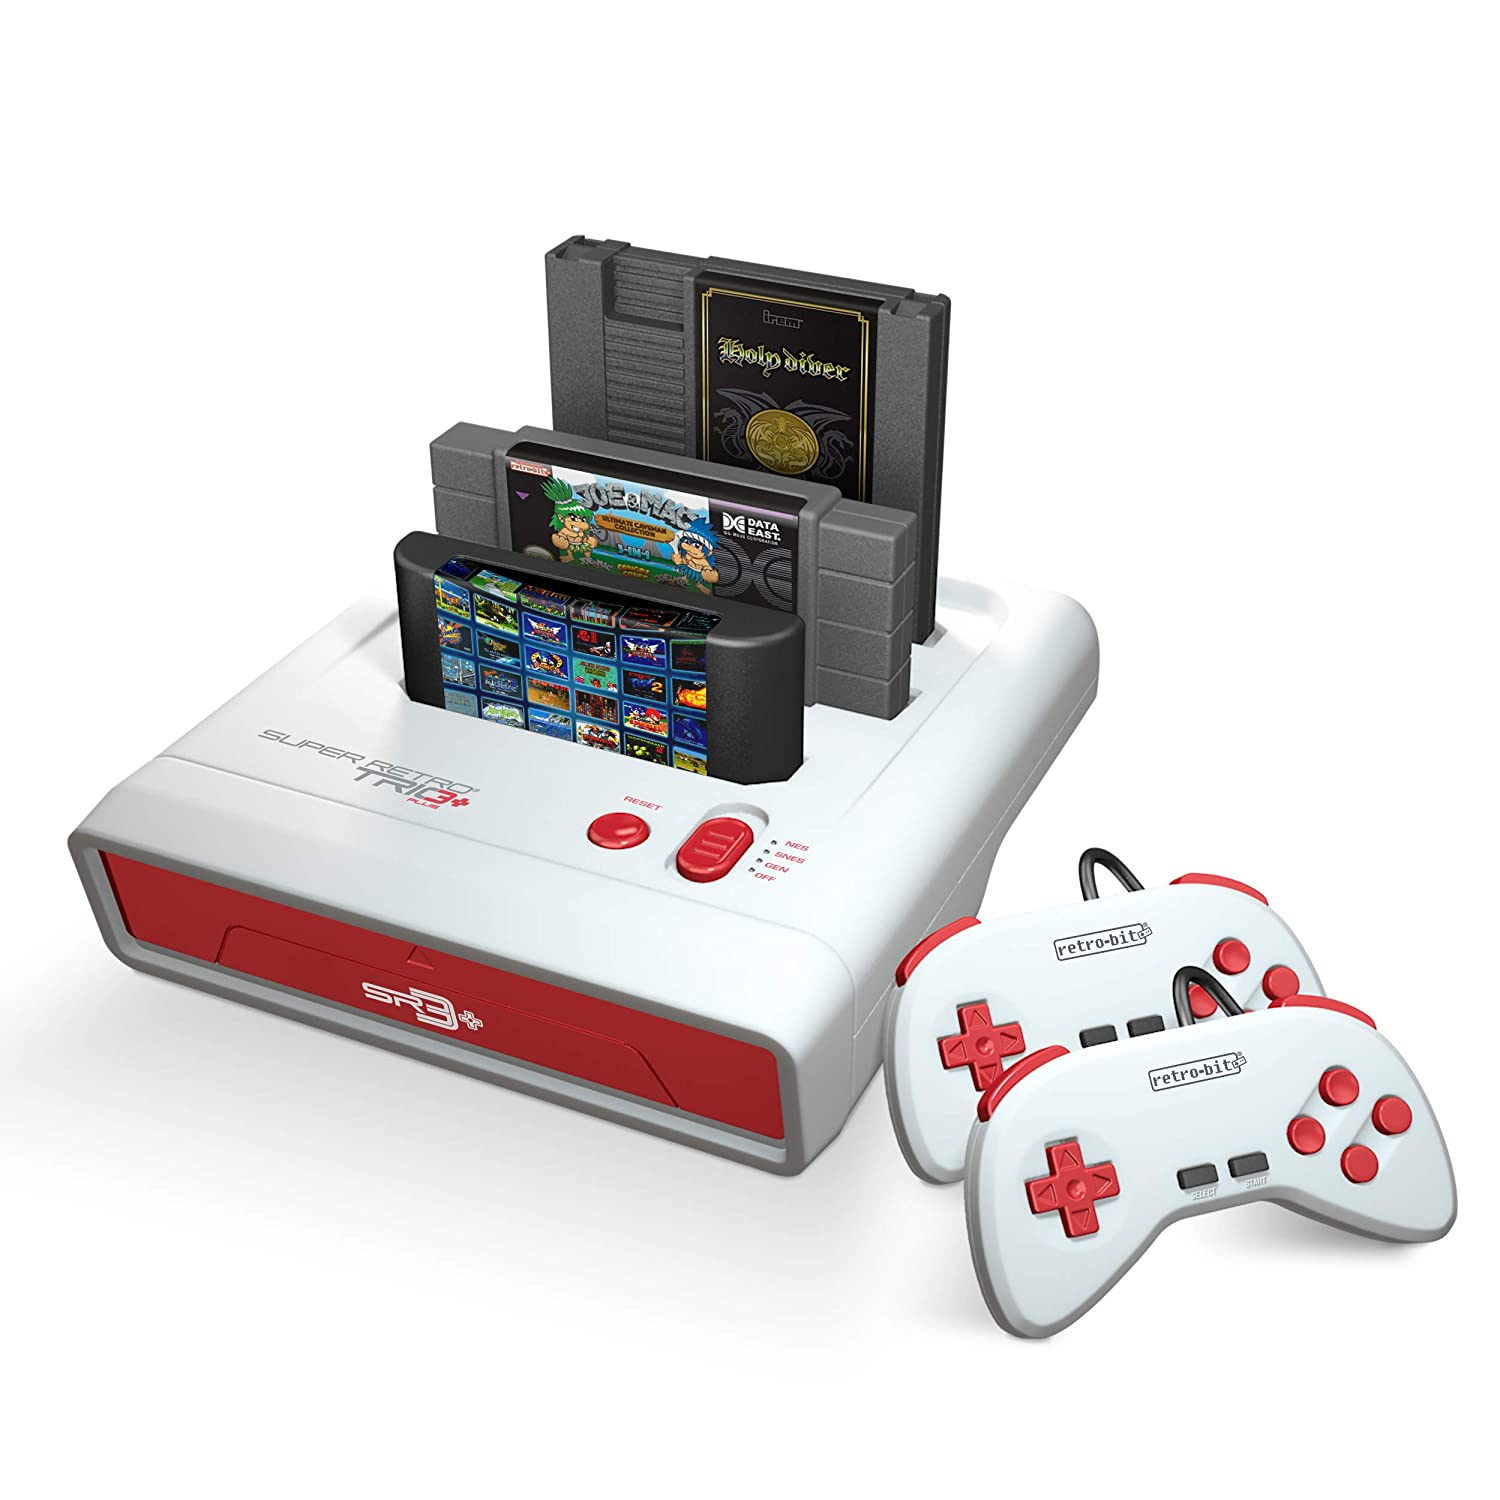 Retro-Bit Super Retro Trio HD Plus 720P 3 in 1 Console System (2019) for Original NES, SNES, and Sega Genesis Games - Red/White